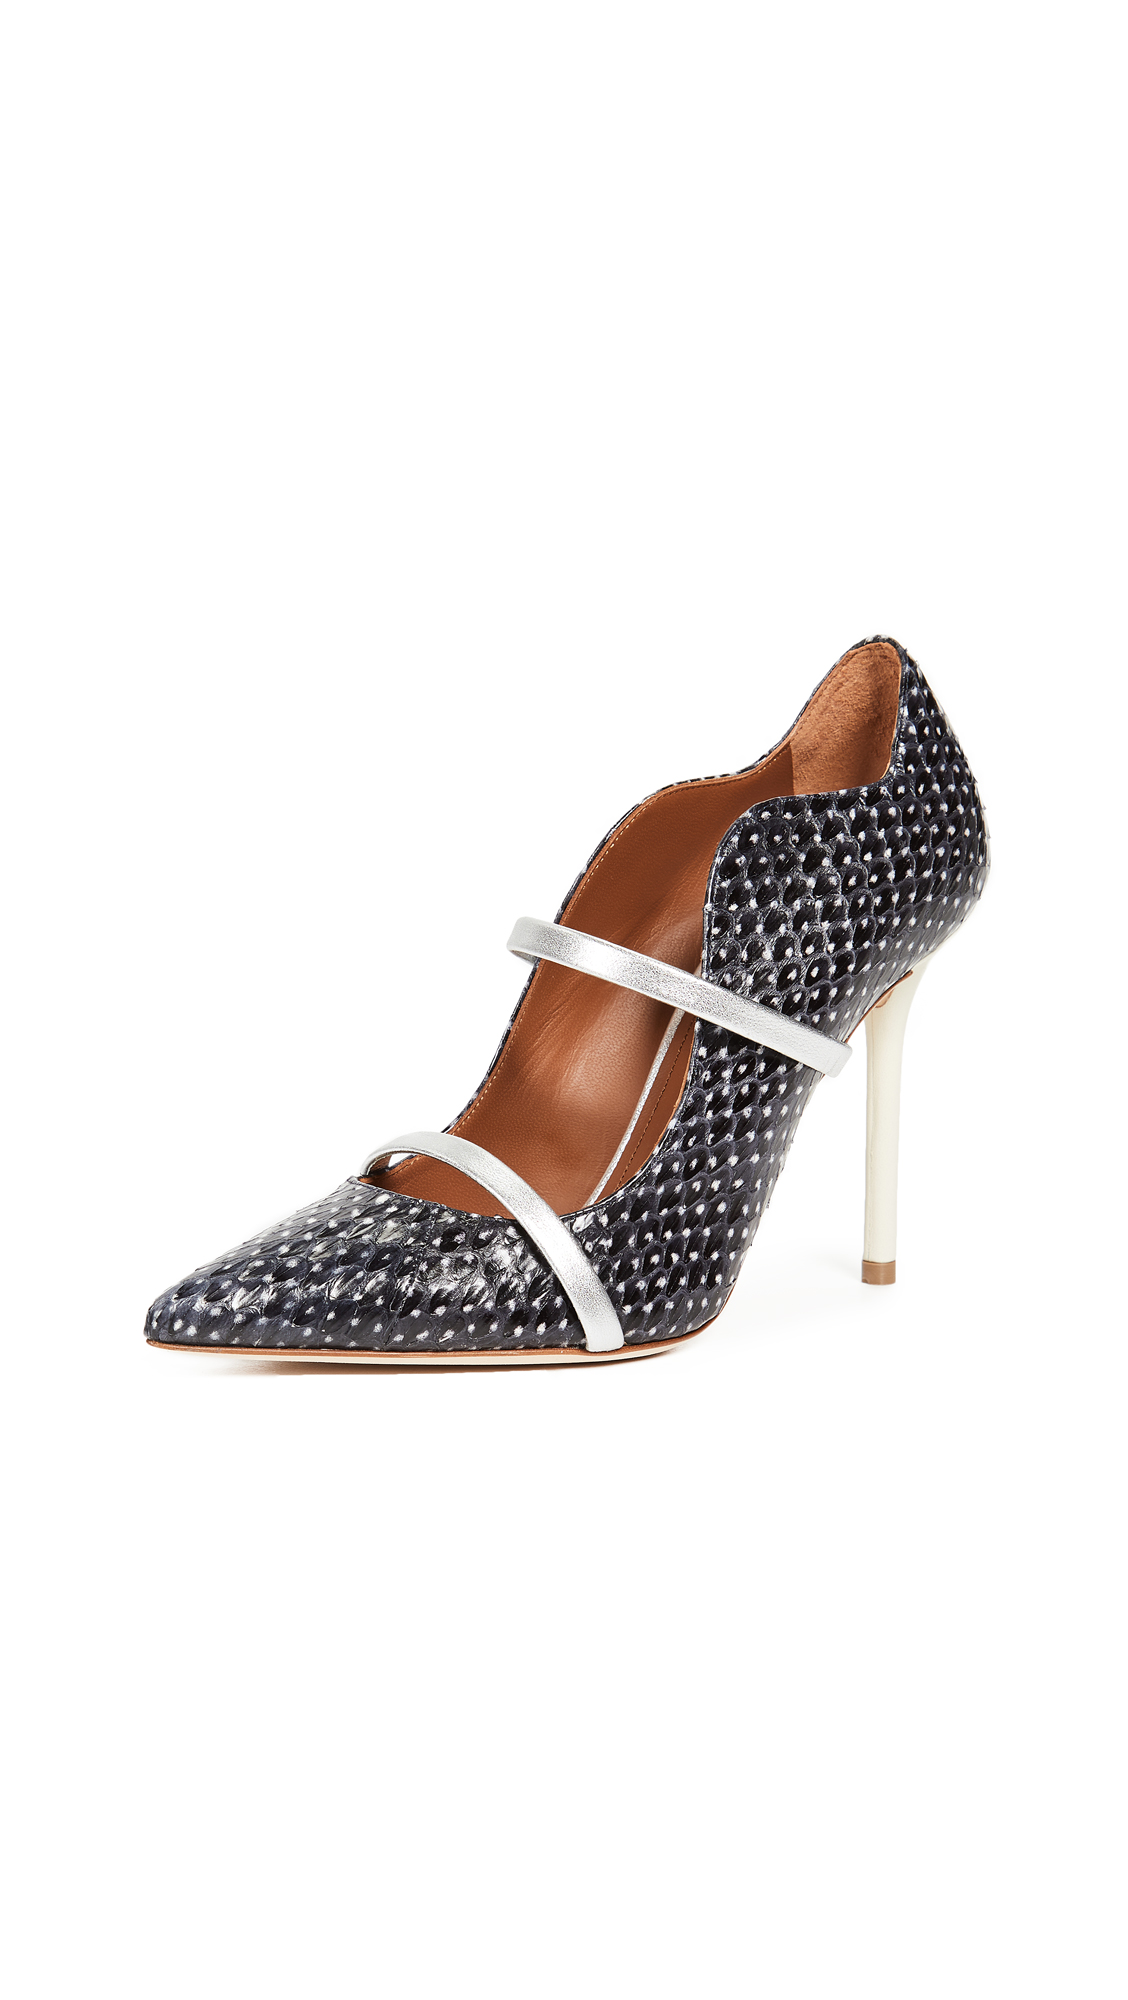 Malone Souliers Snakeskin Maureen Pumps - Black/White/Silver/White